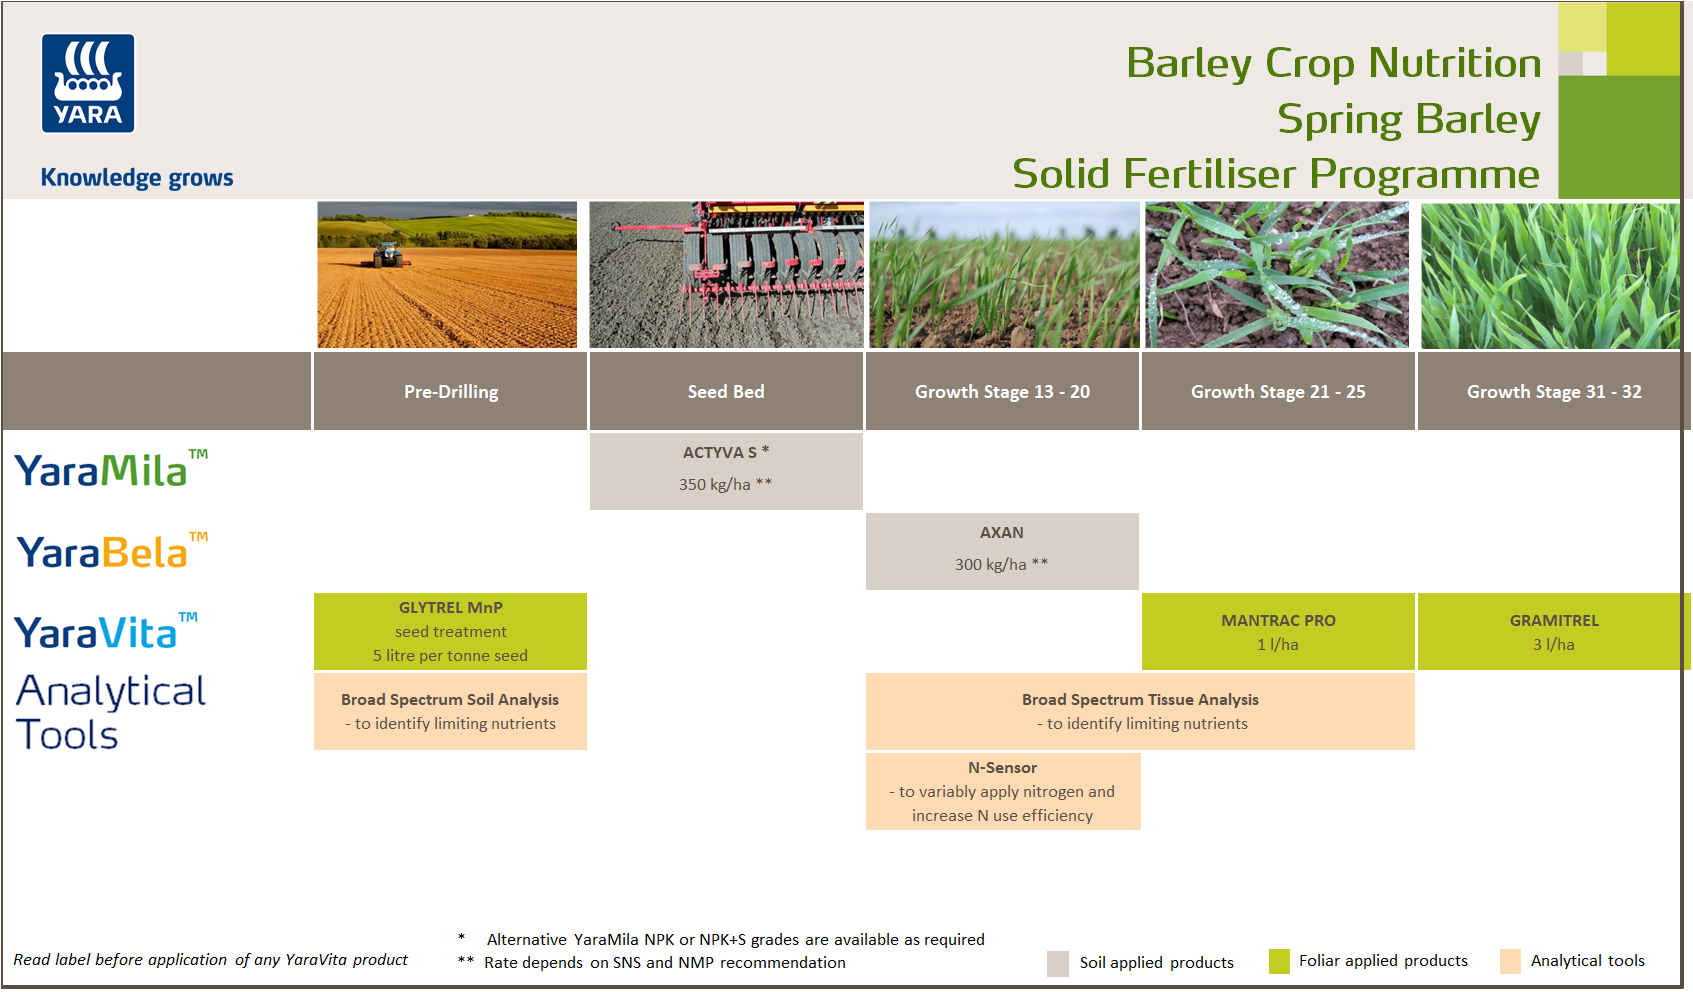 Winter barley fertiliser programme